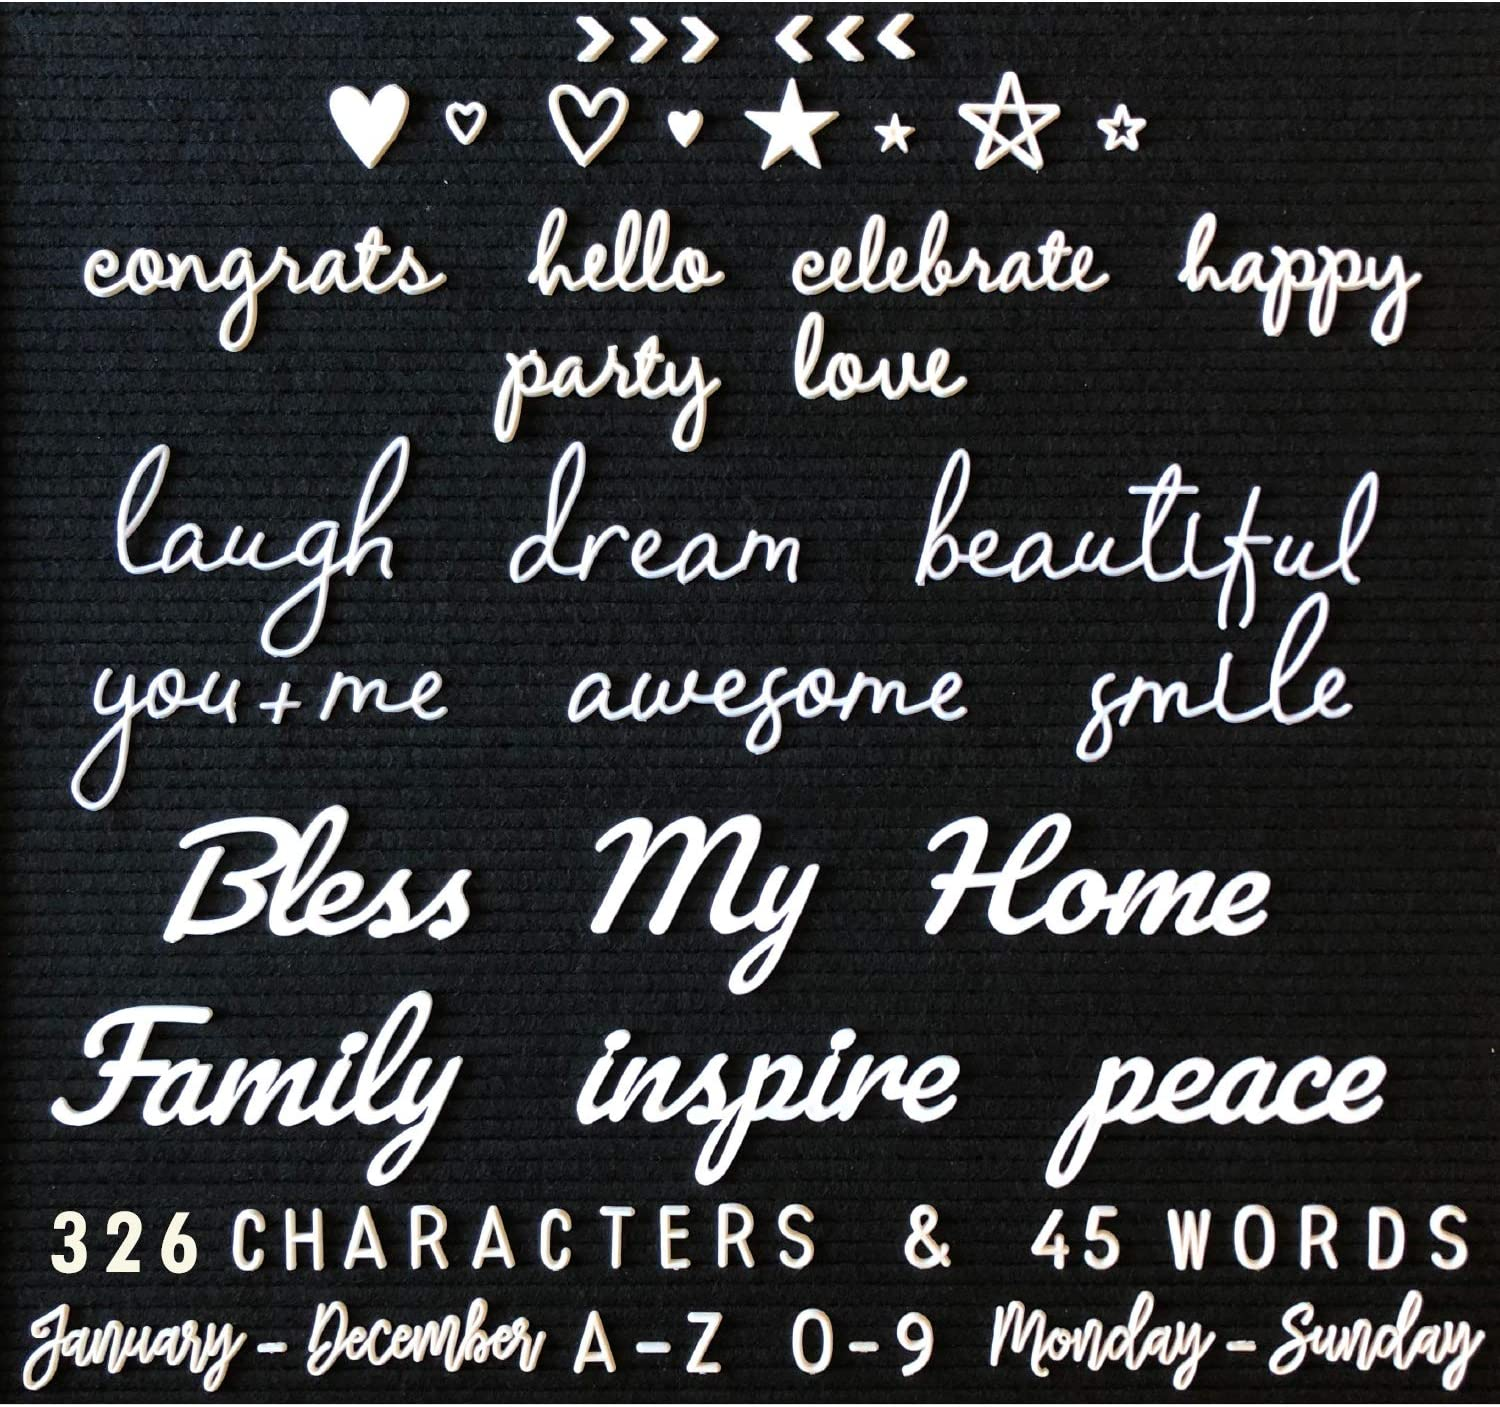 Letter Board Letters and Words For Changeable Boards and Felt Letterboards - 371 Piece ALL WHITE Mega Bundle, 45 1-3 Inch Cursive Words - Characters, Letters, Plastic Letter Set, Words, Bag Only